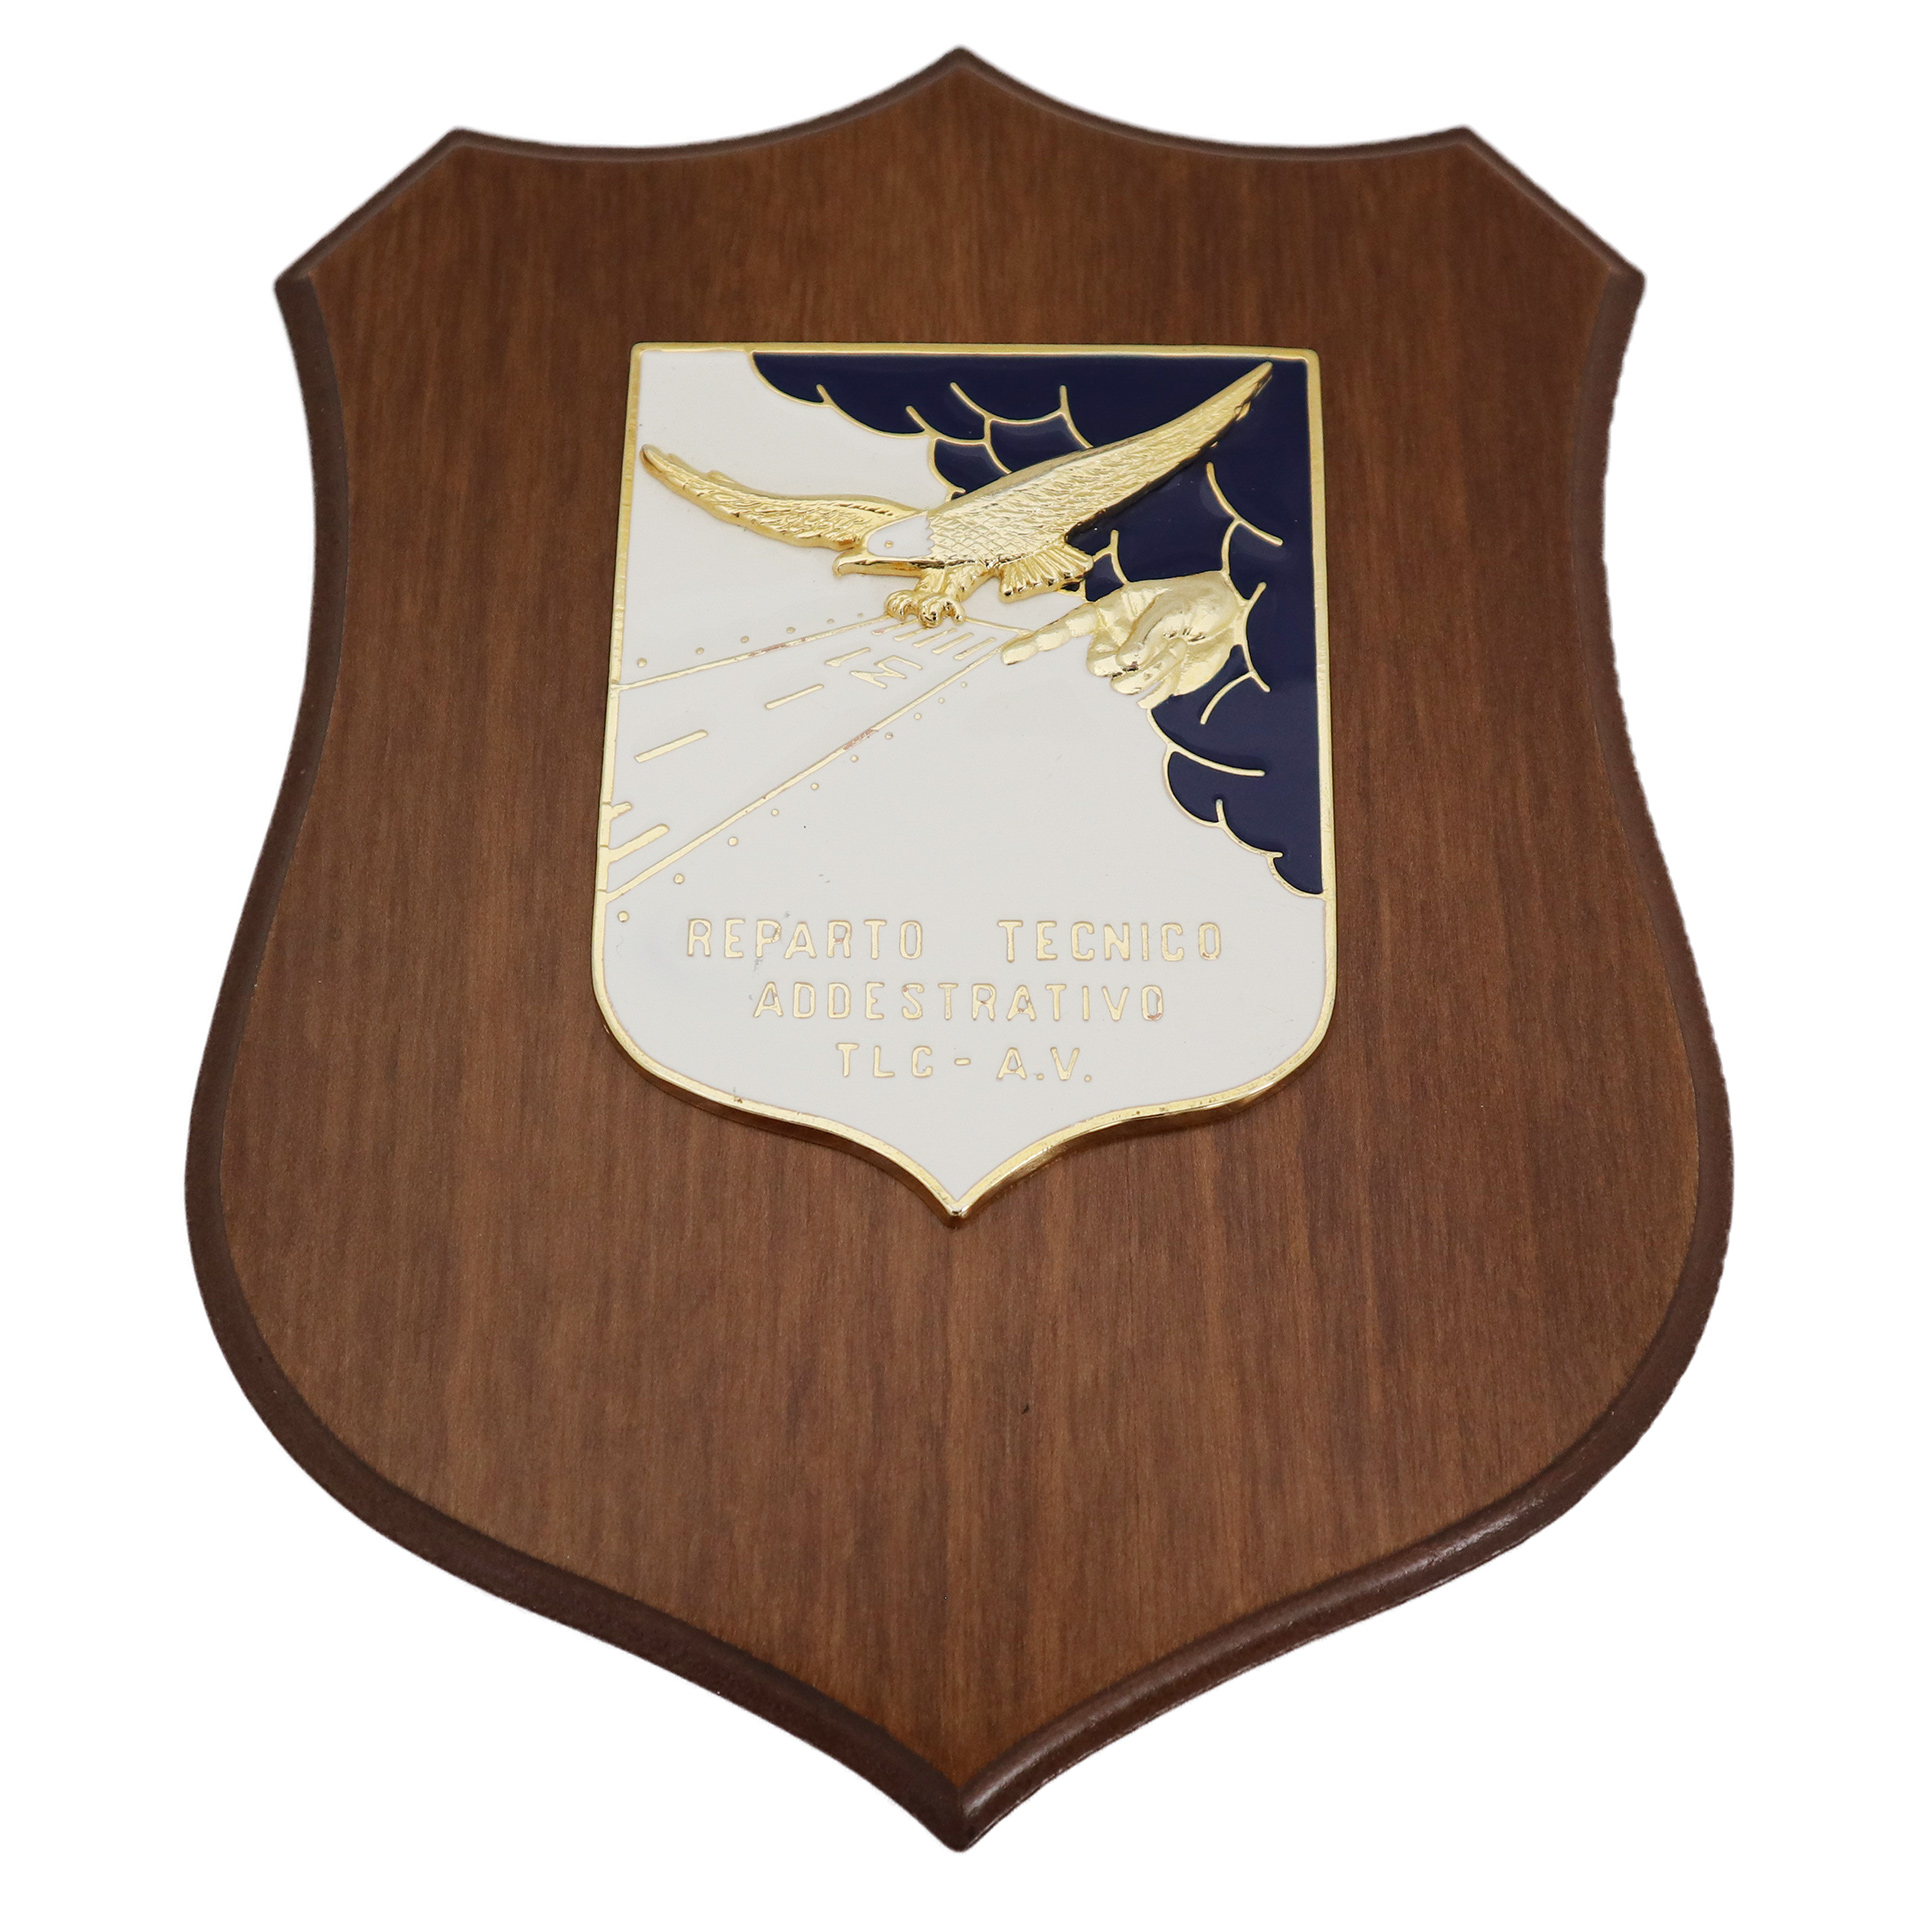 CREST IN METALLO SMALTATO BASE LEGNO CL3 22,50 X 17,50 CM REP TECN ADD T